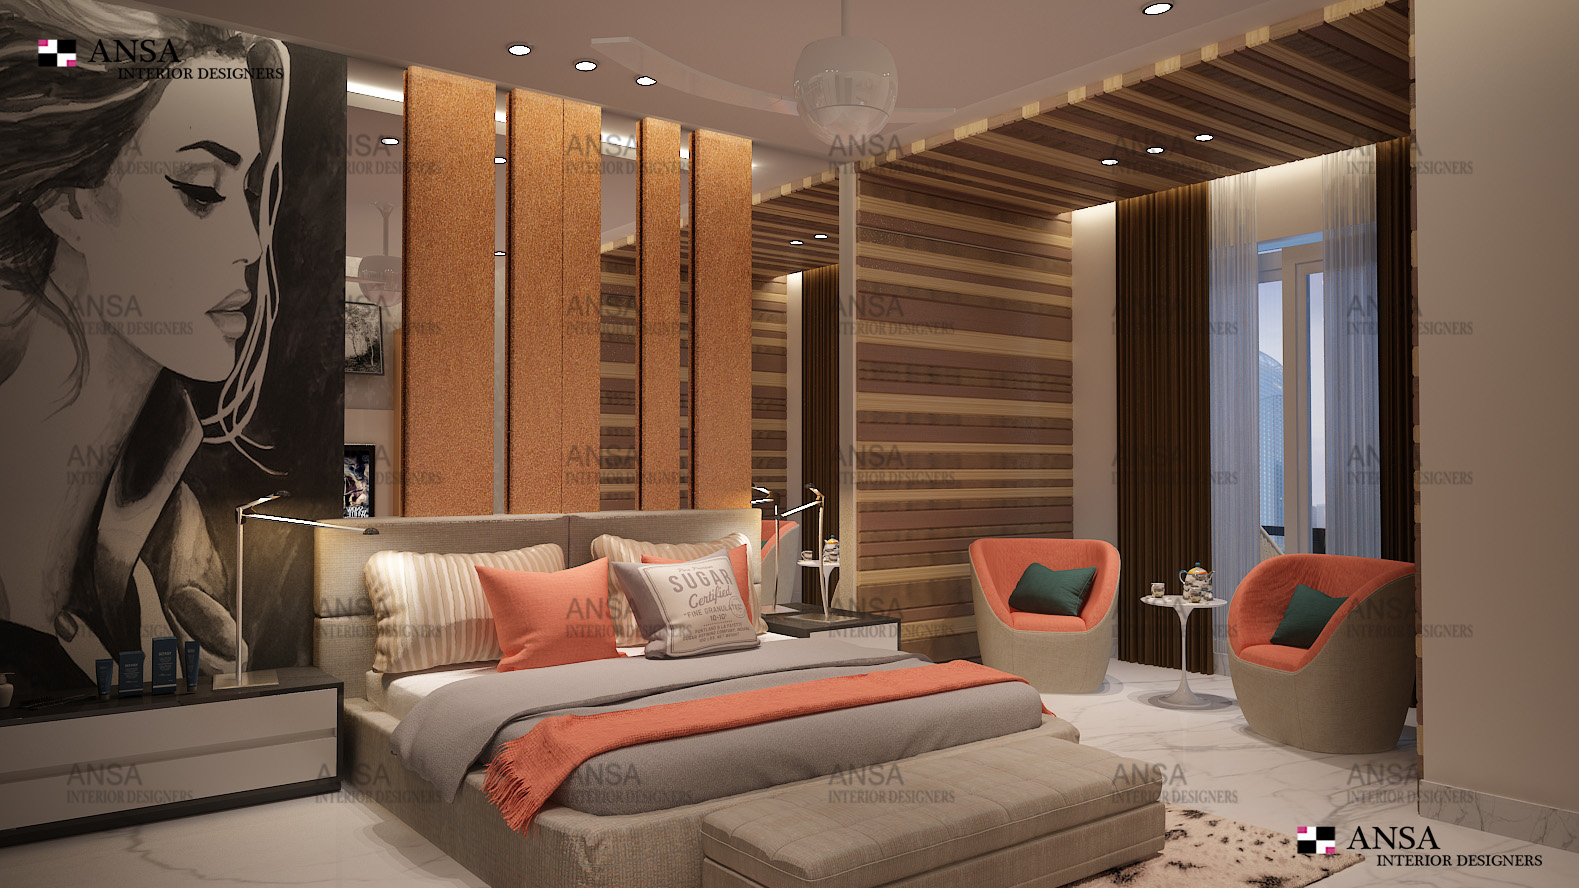 DAGHTERS BEDROOM Interior Design